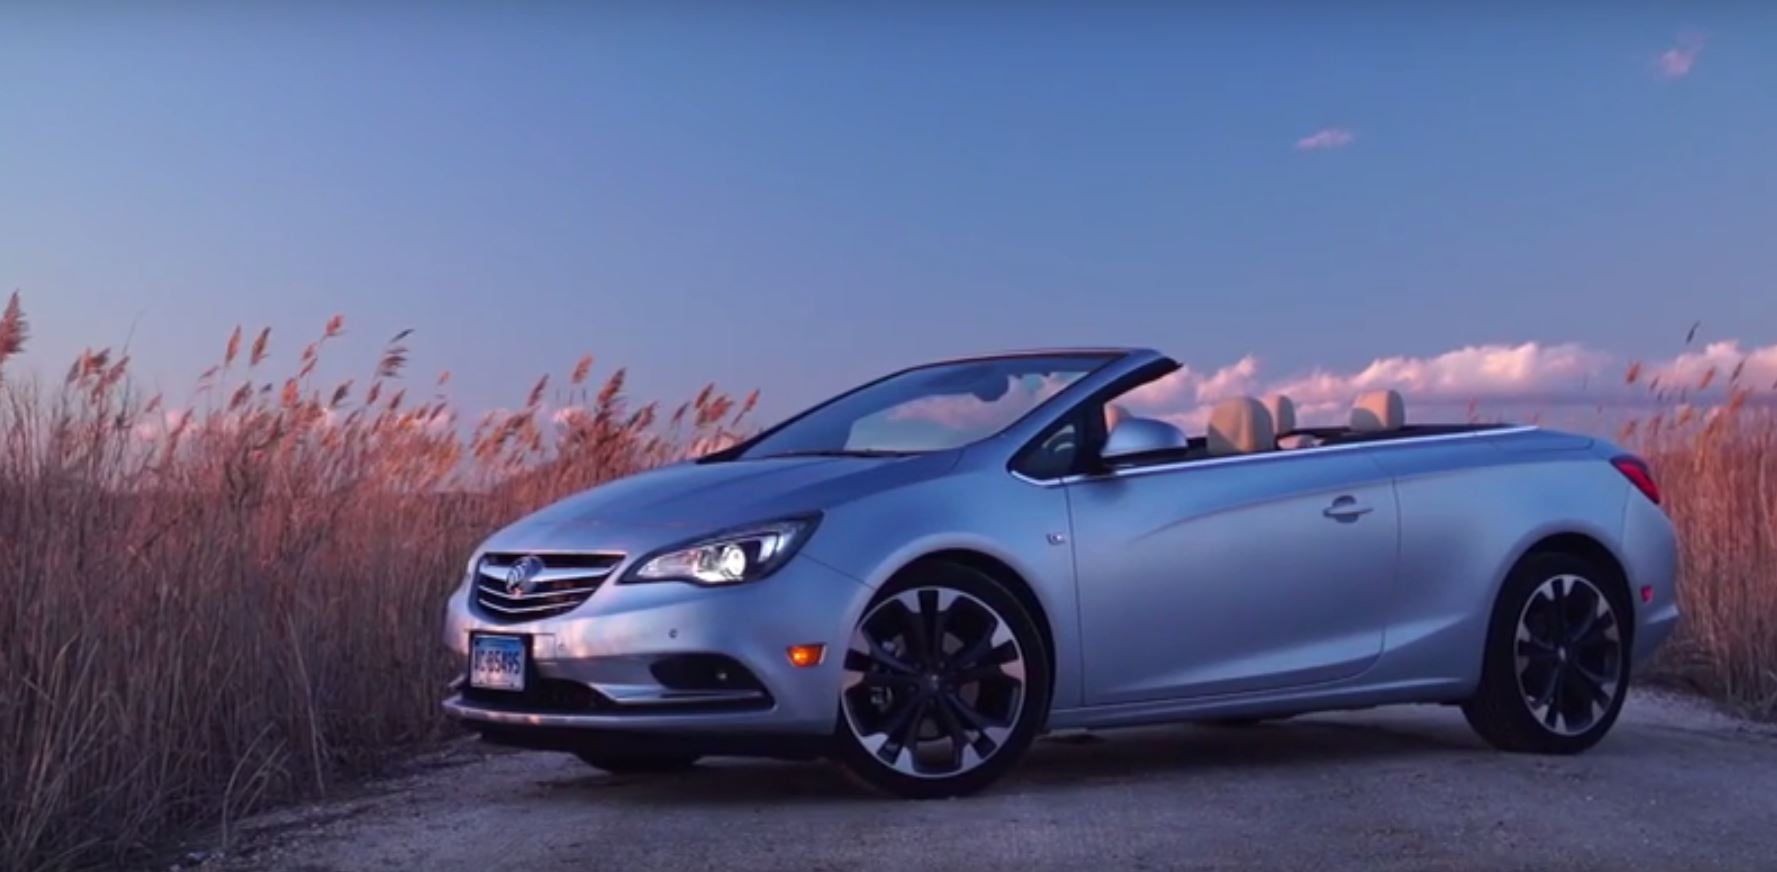 2016 Buick Cascada Criticized In Consumer Reports Review For Outdated Interior